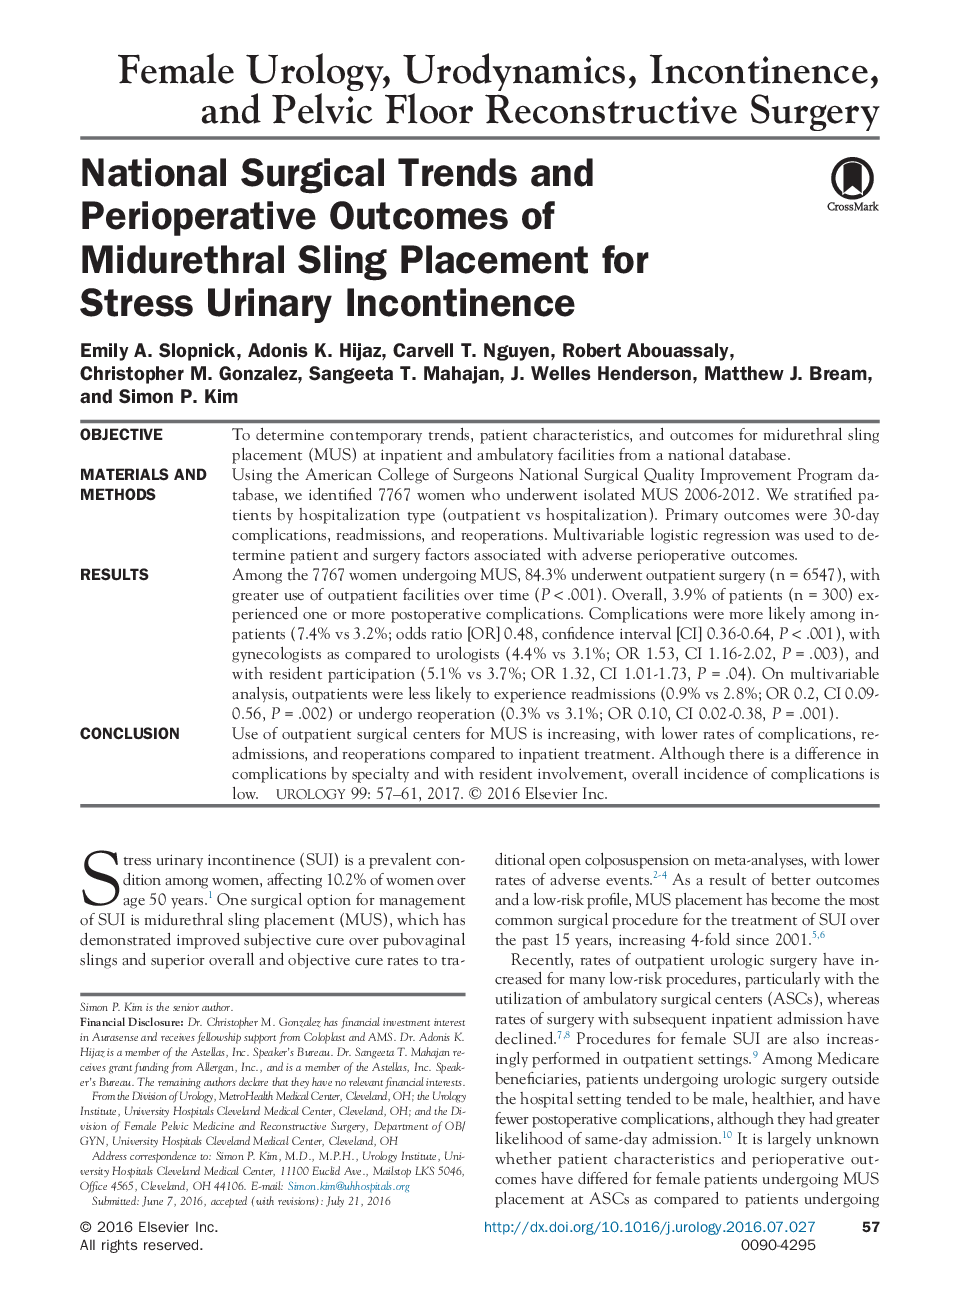 National Surgical Trends and Perioperative Outcomes of Midurethral Sling Placement for Stress Urinary Incontinence